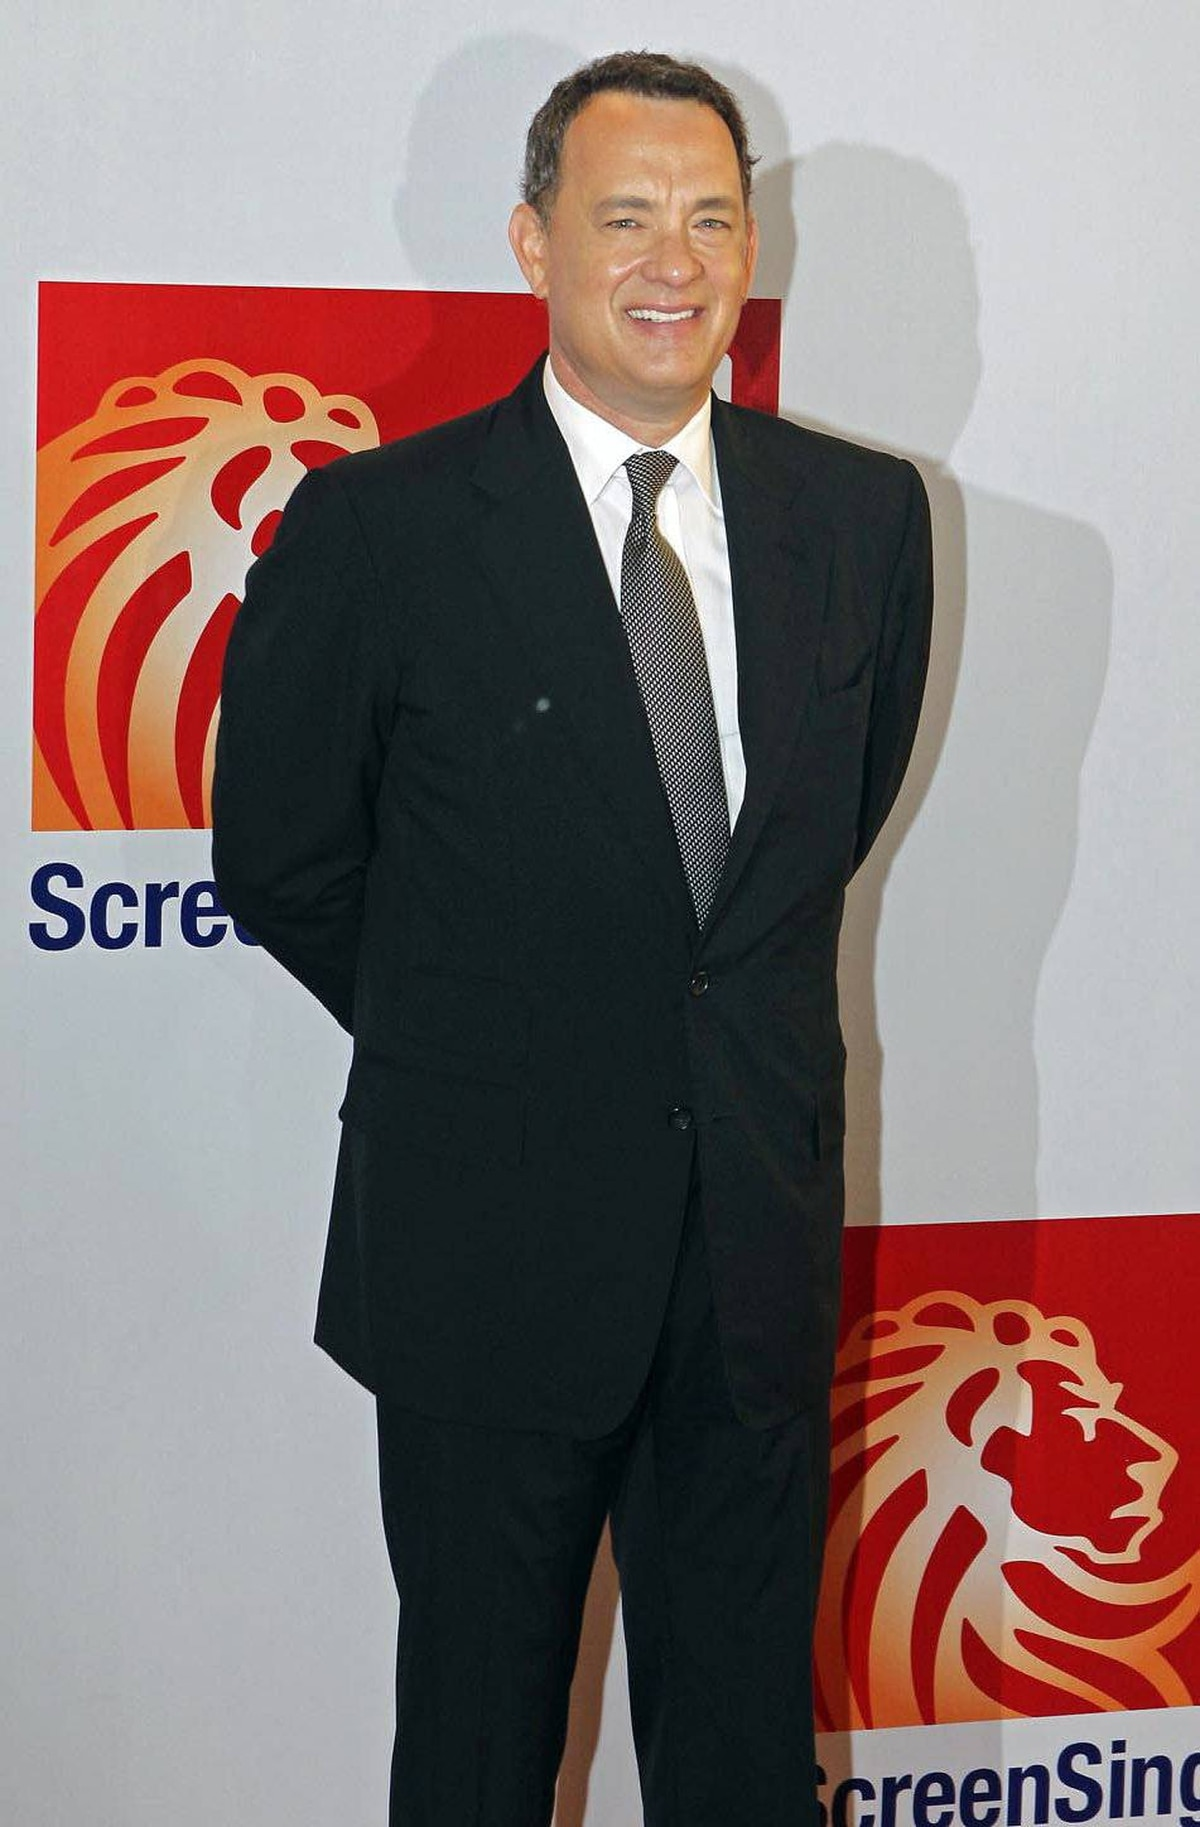 Tom Hanks arrives for the premiere of Larry Crowne, Saturday June 11, 2011, in Singapore.